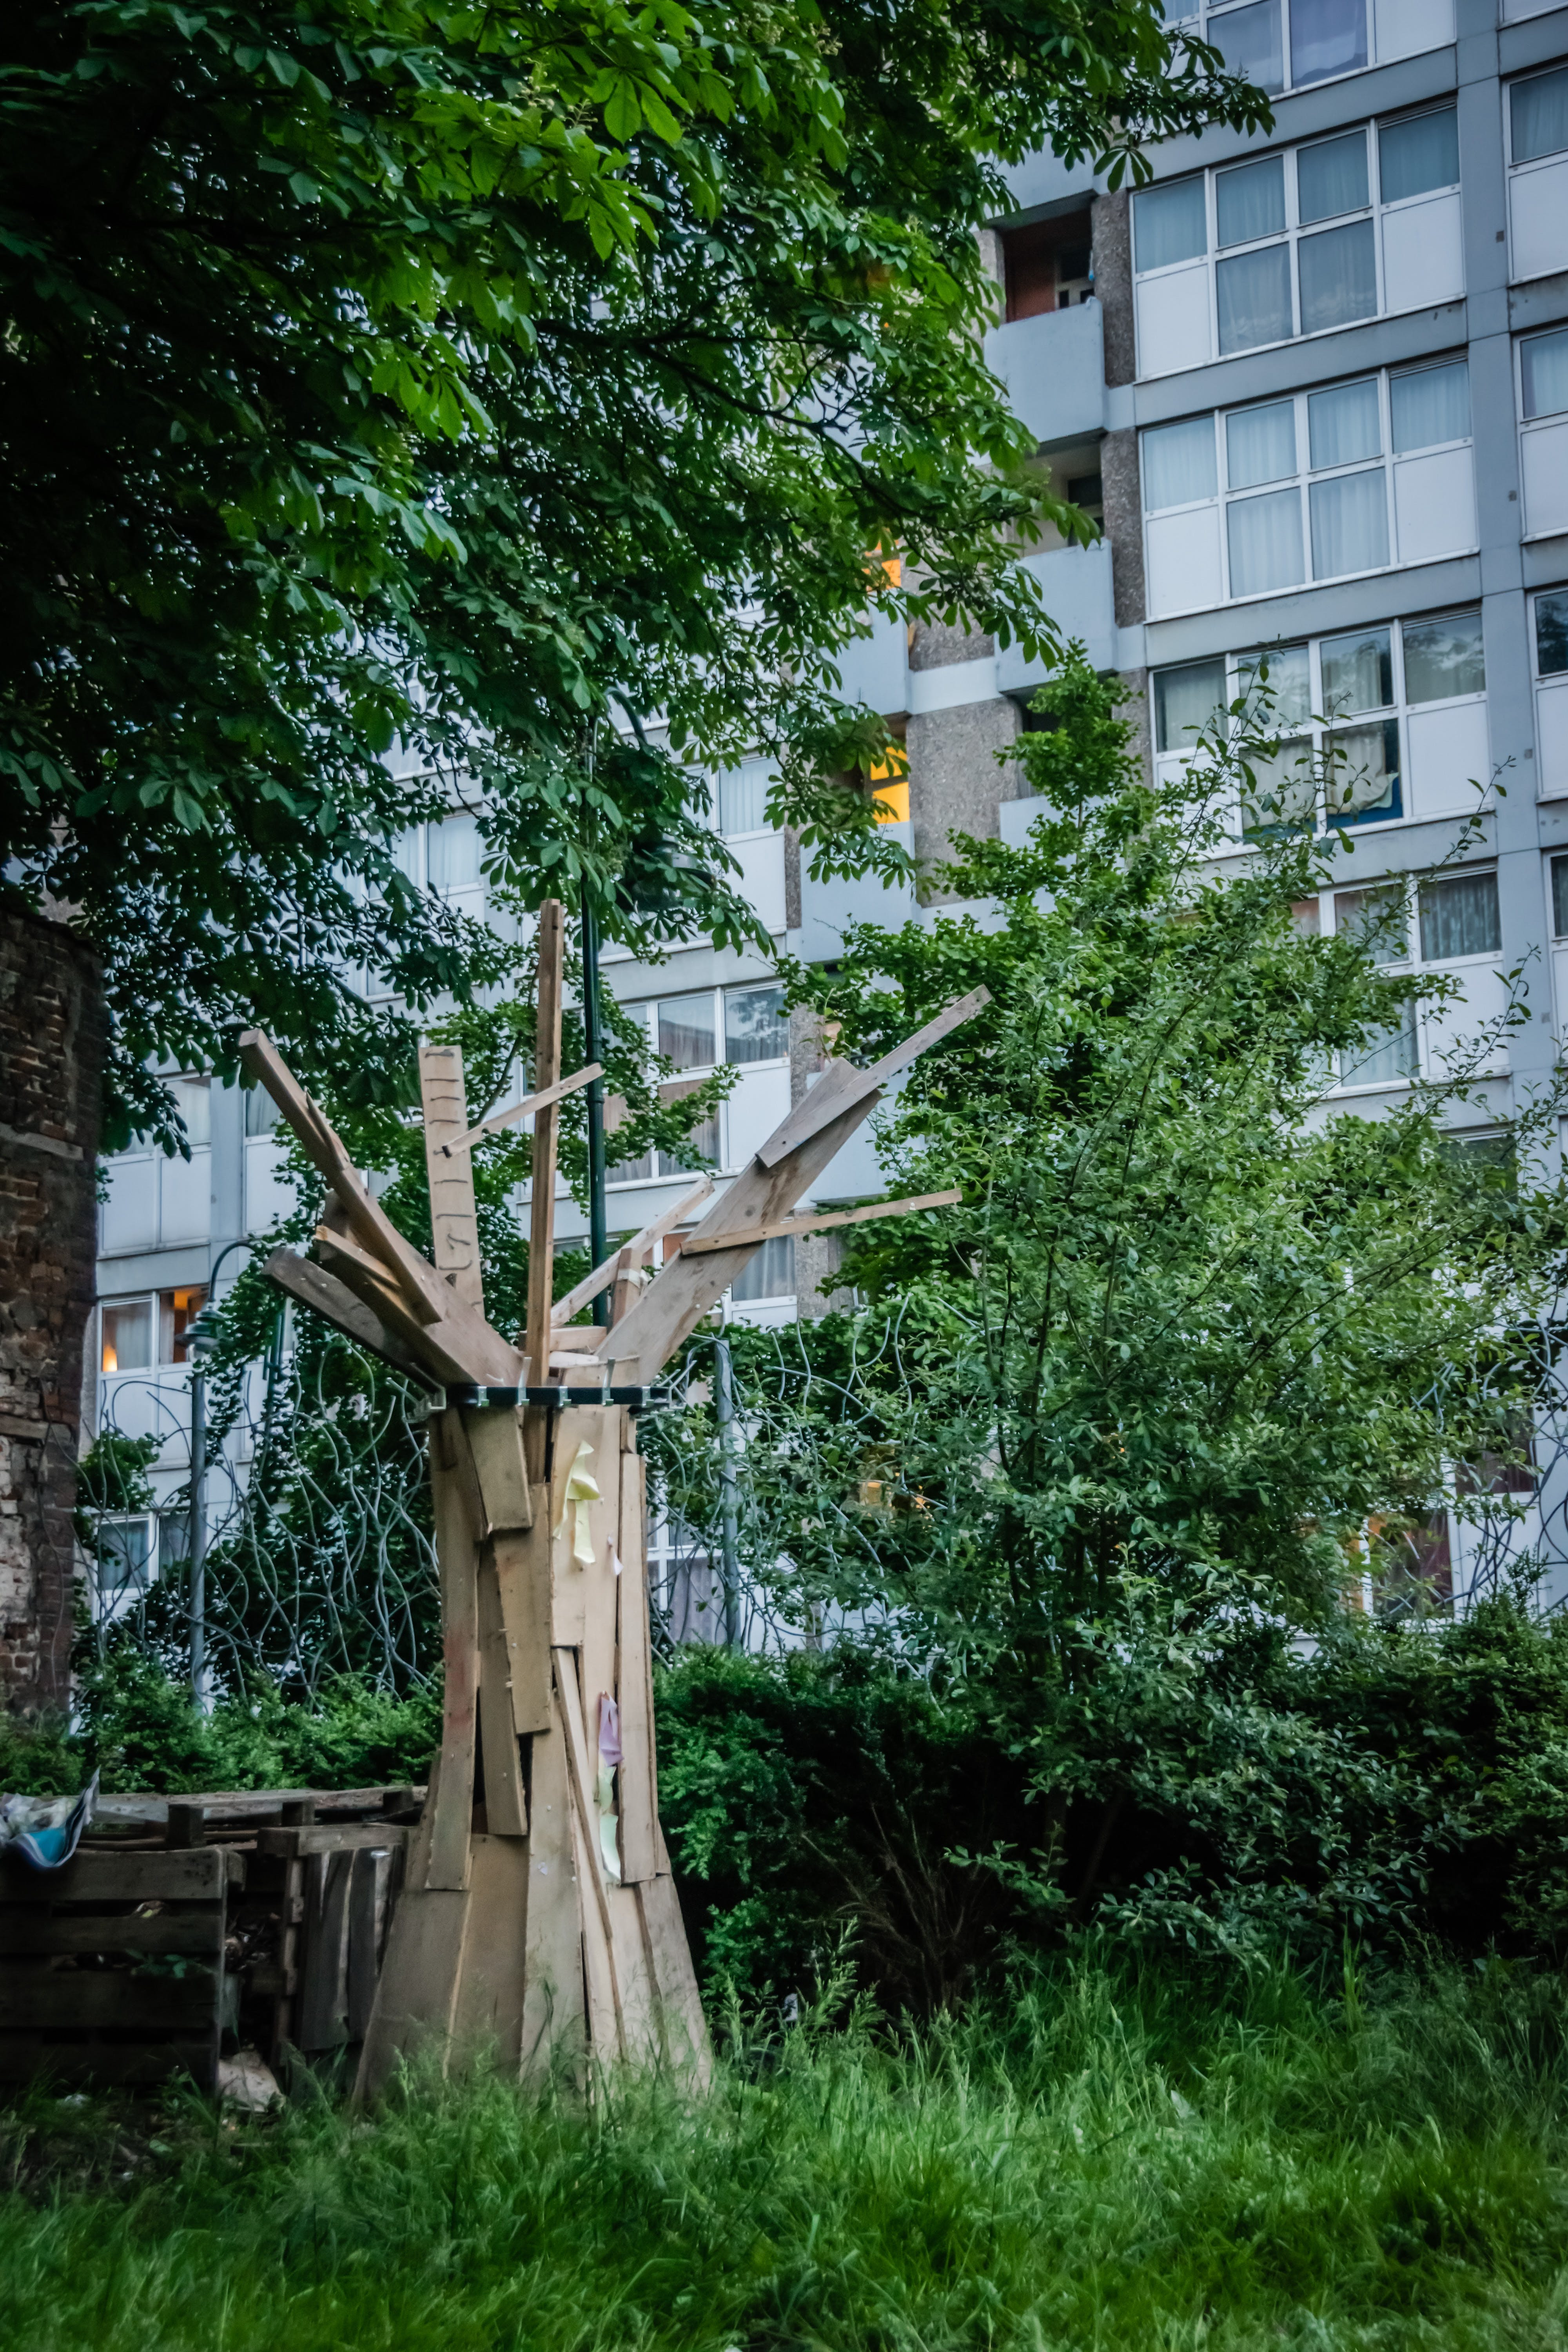 Wooden Sculpture Near Tree during Day